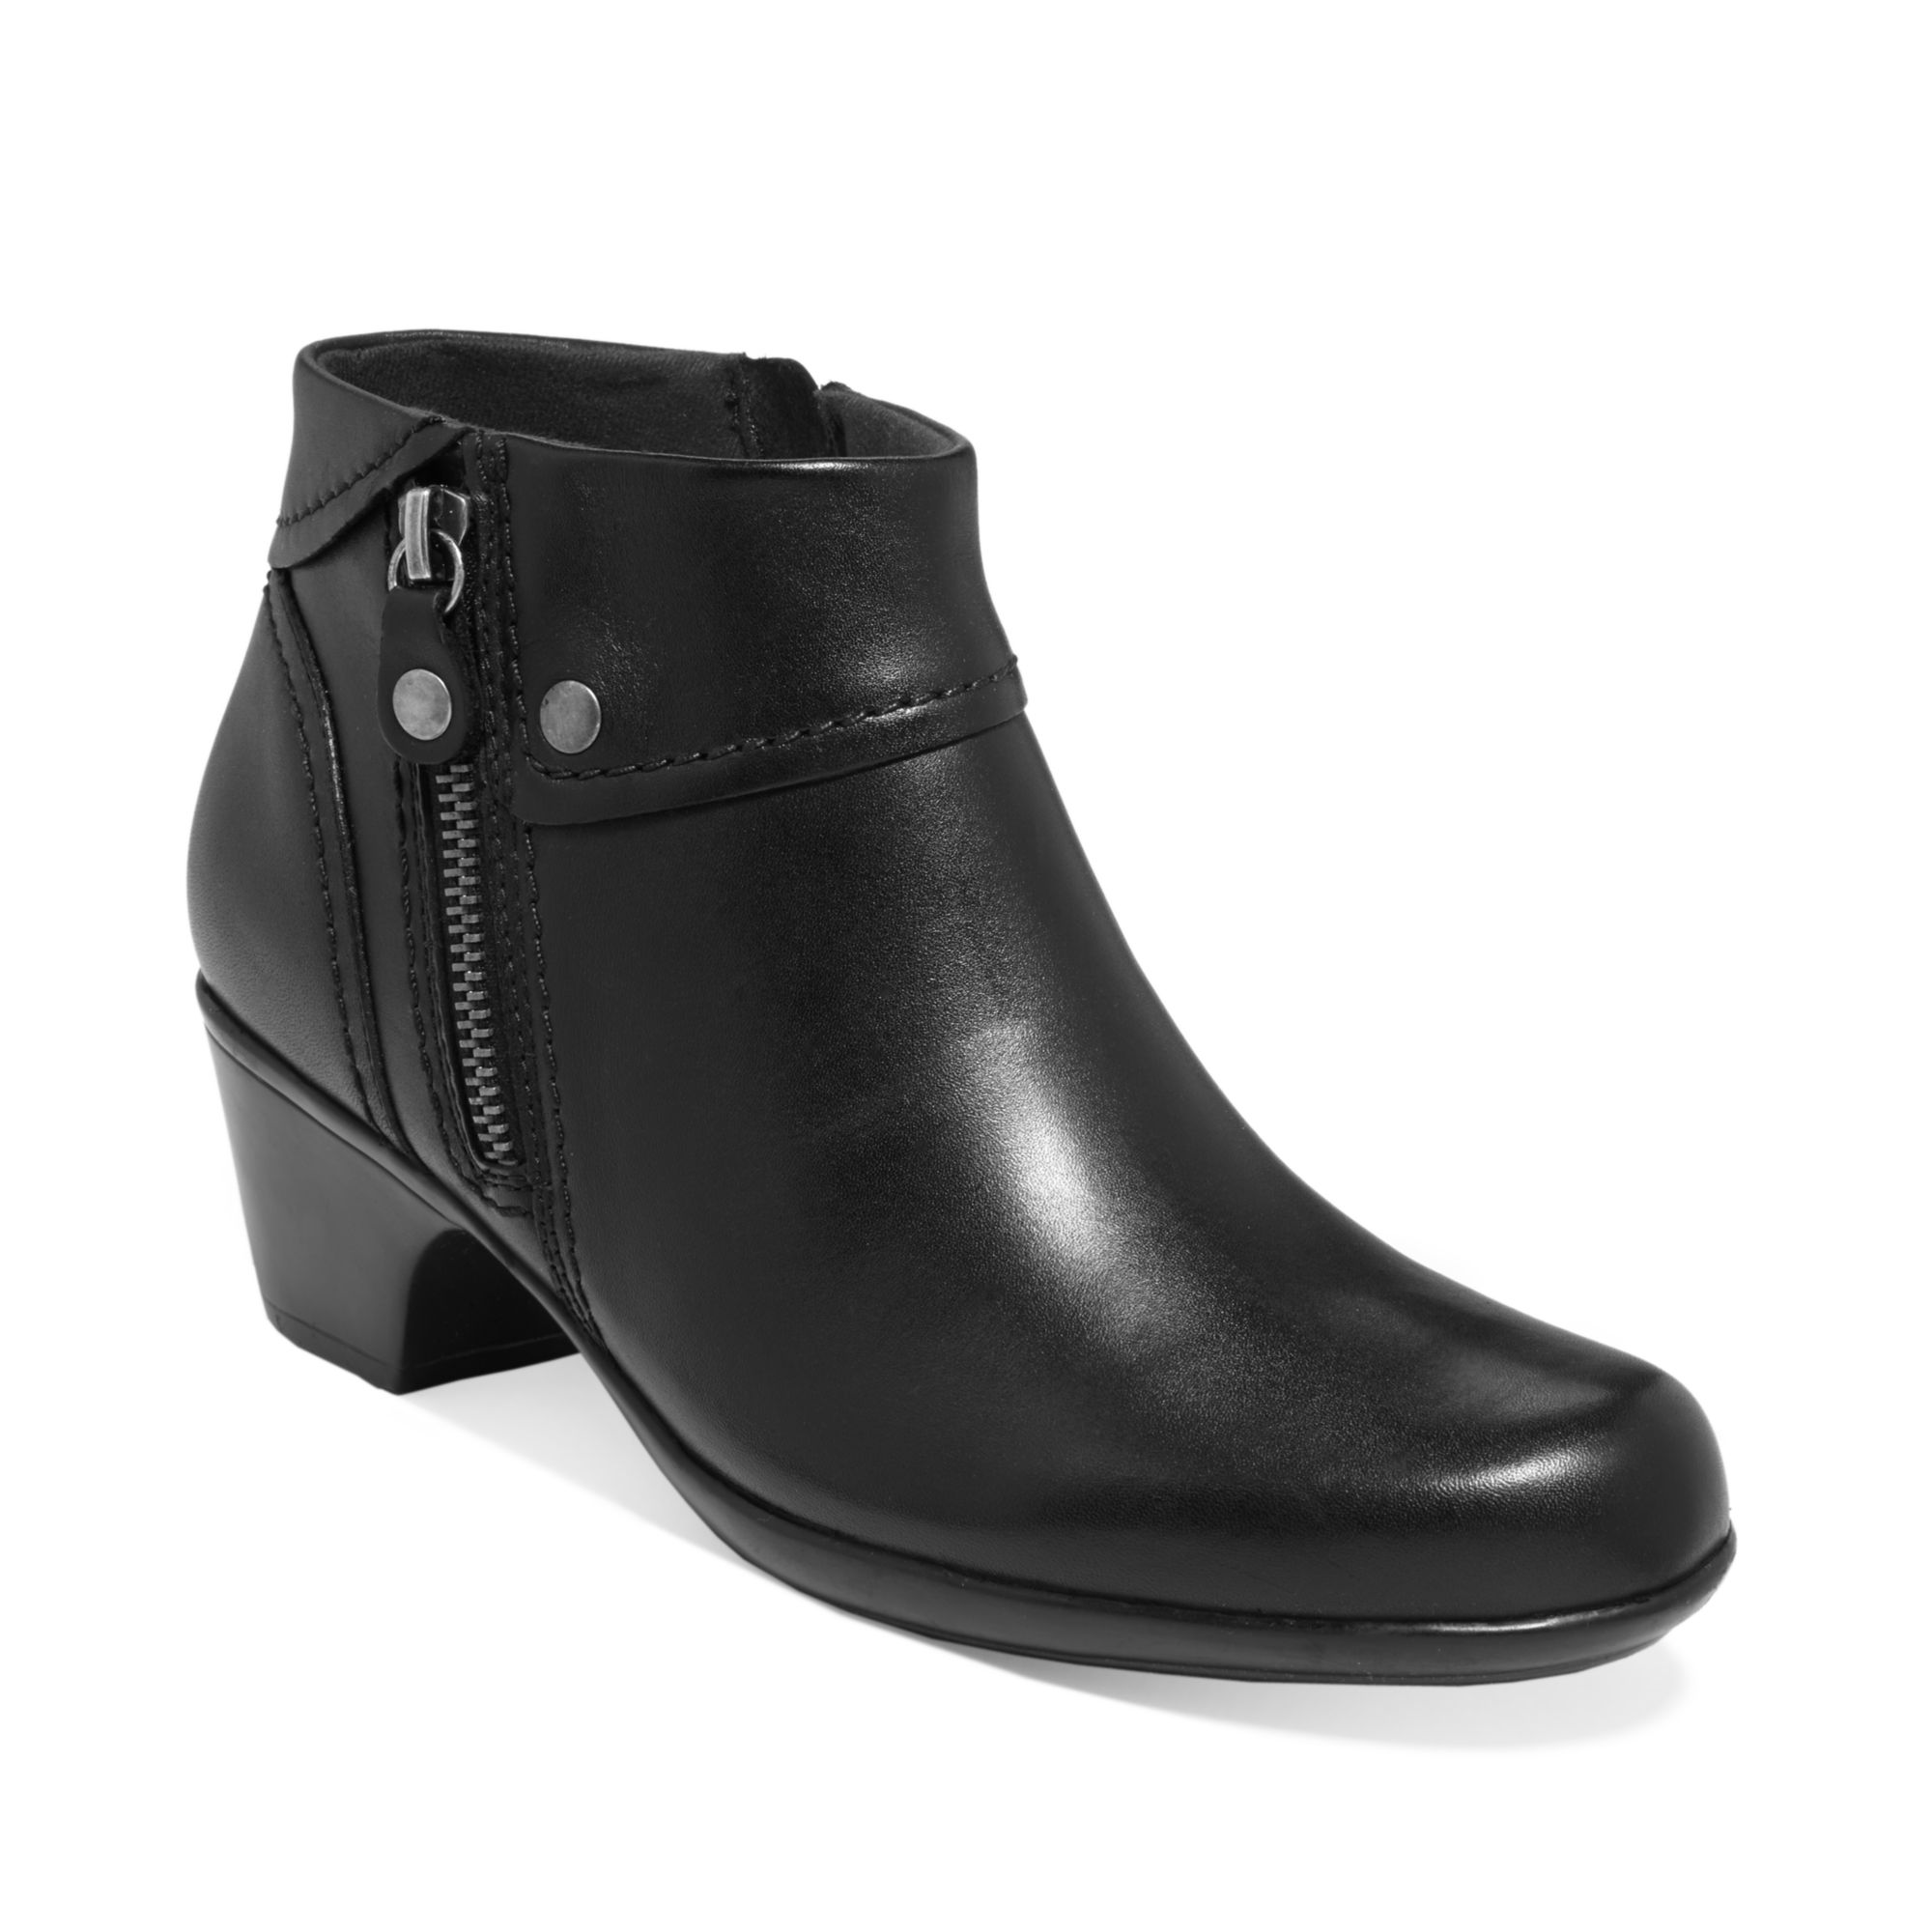 Lastest Schutz Spunky Ankle Boot  These So Live Up To Their Name  So Comfy 11 Stuart Weitzman Womens Lowland OTK Boot  Shana SWEARS By These Theyre